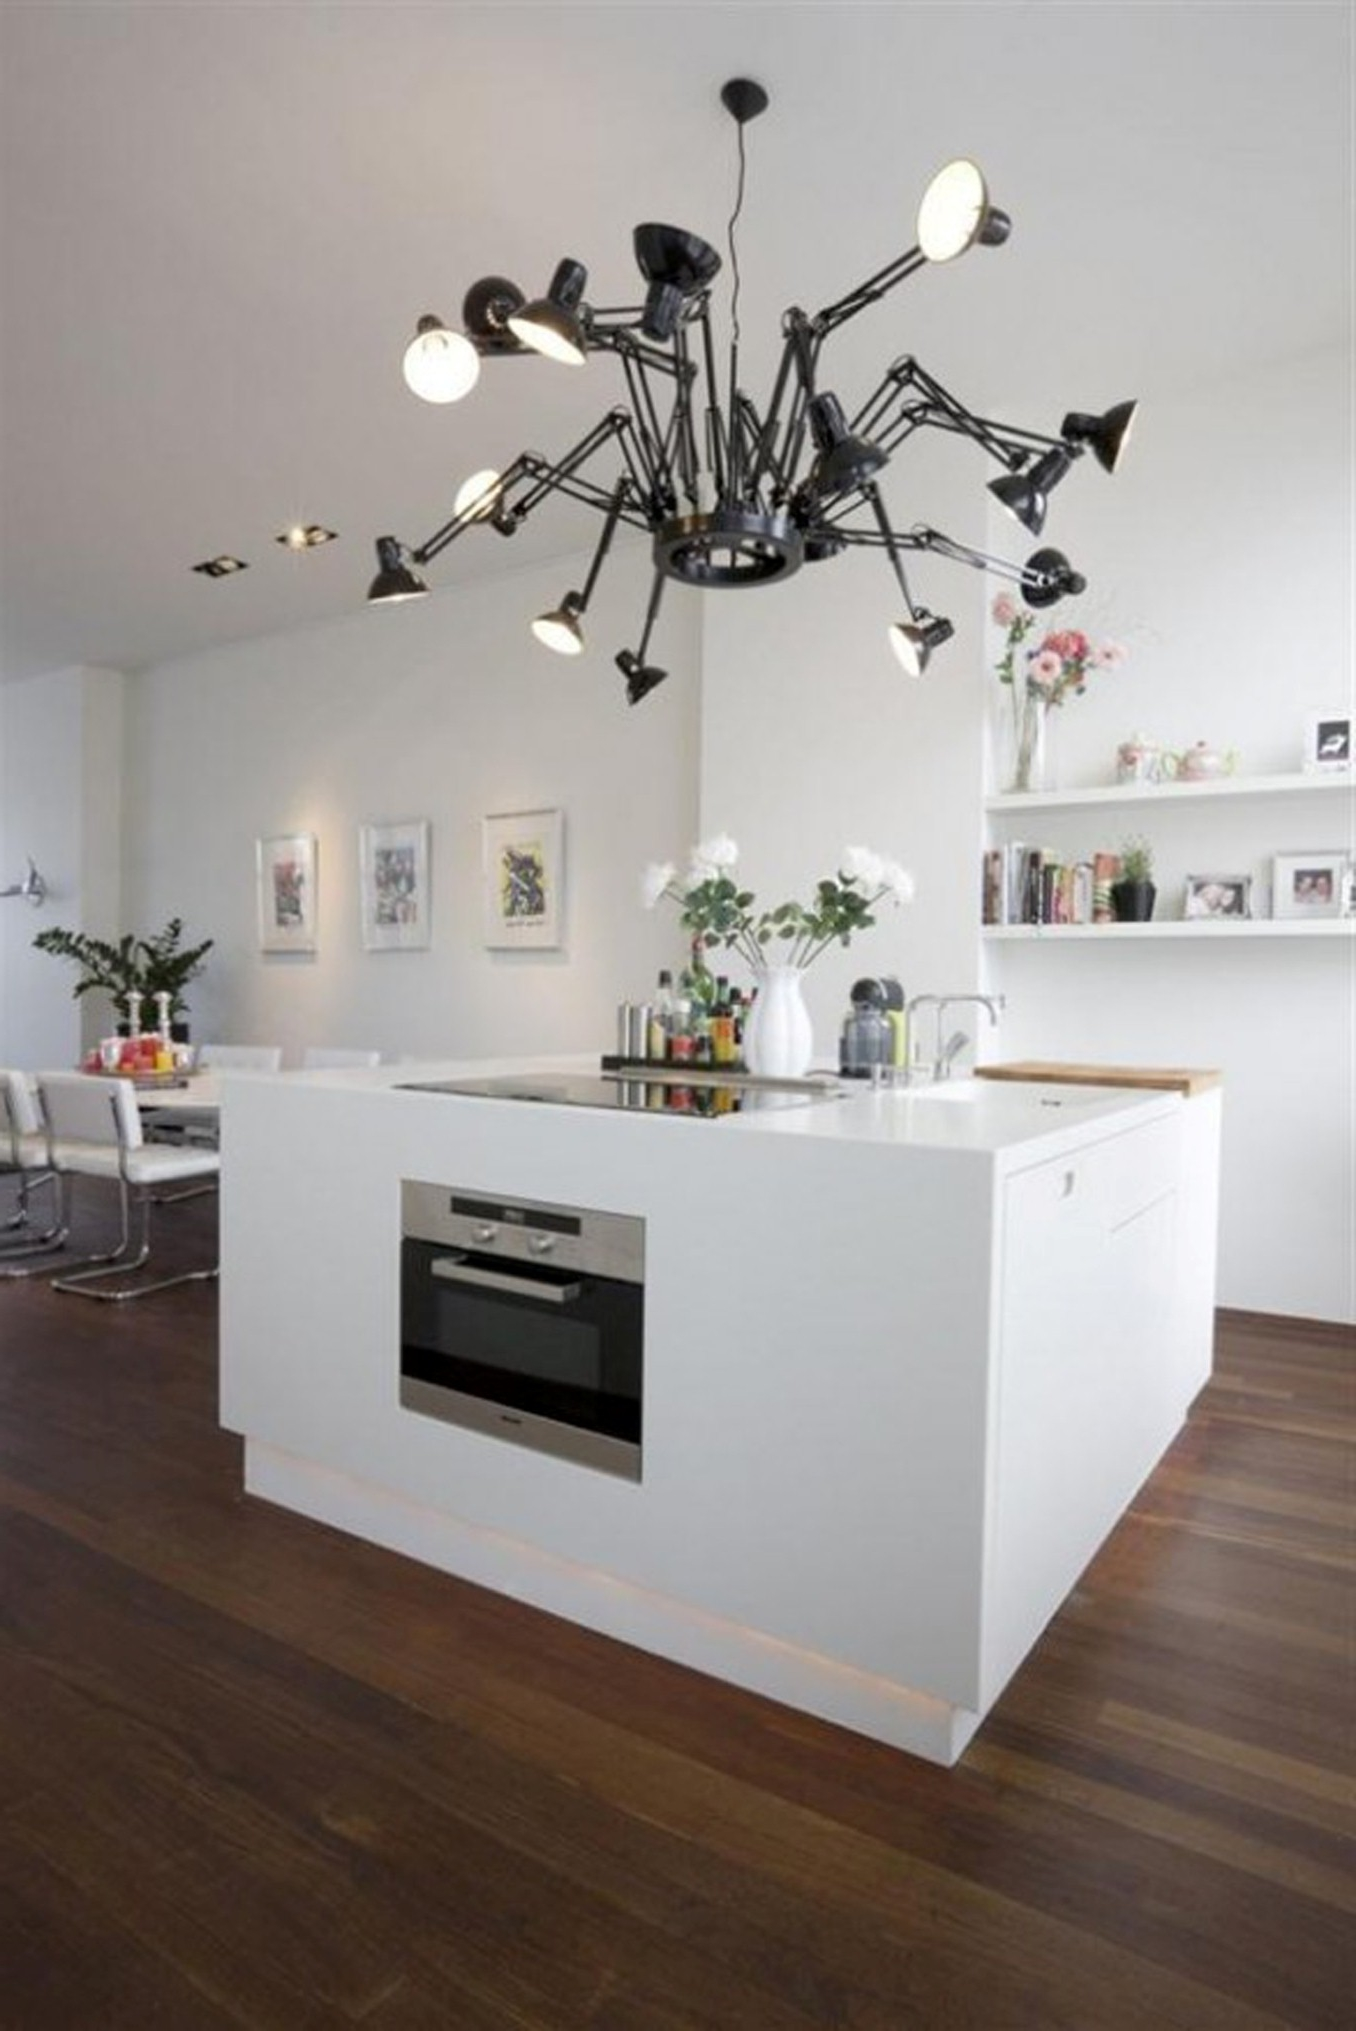 Wonderful Kitchen Design Architects (Image 15 of 19)